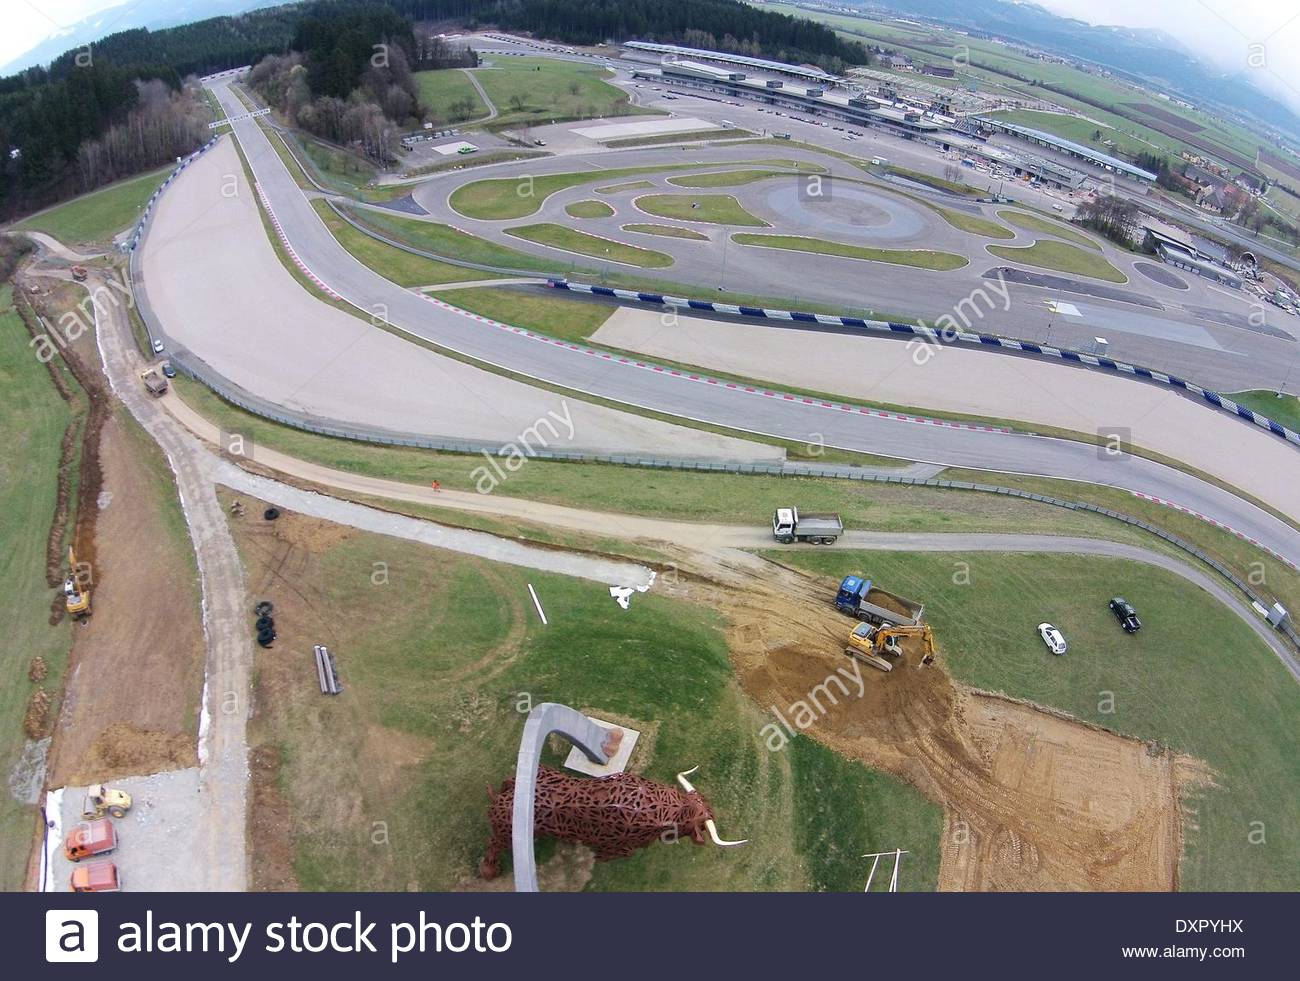 stock photo epa04141167 a general view over the race track as construction works continue at the red bull ring race track in spielberg austria austria view red bull